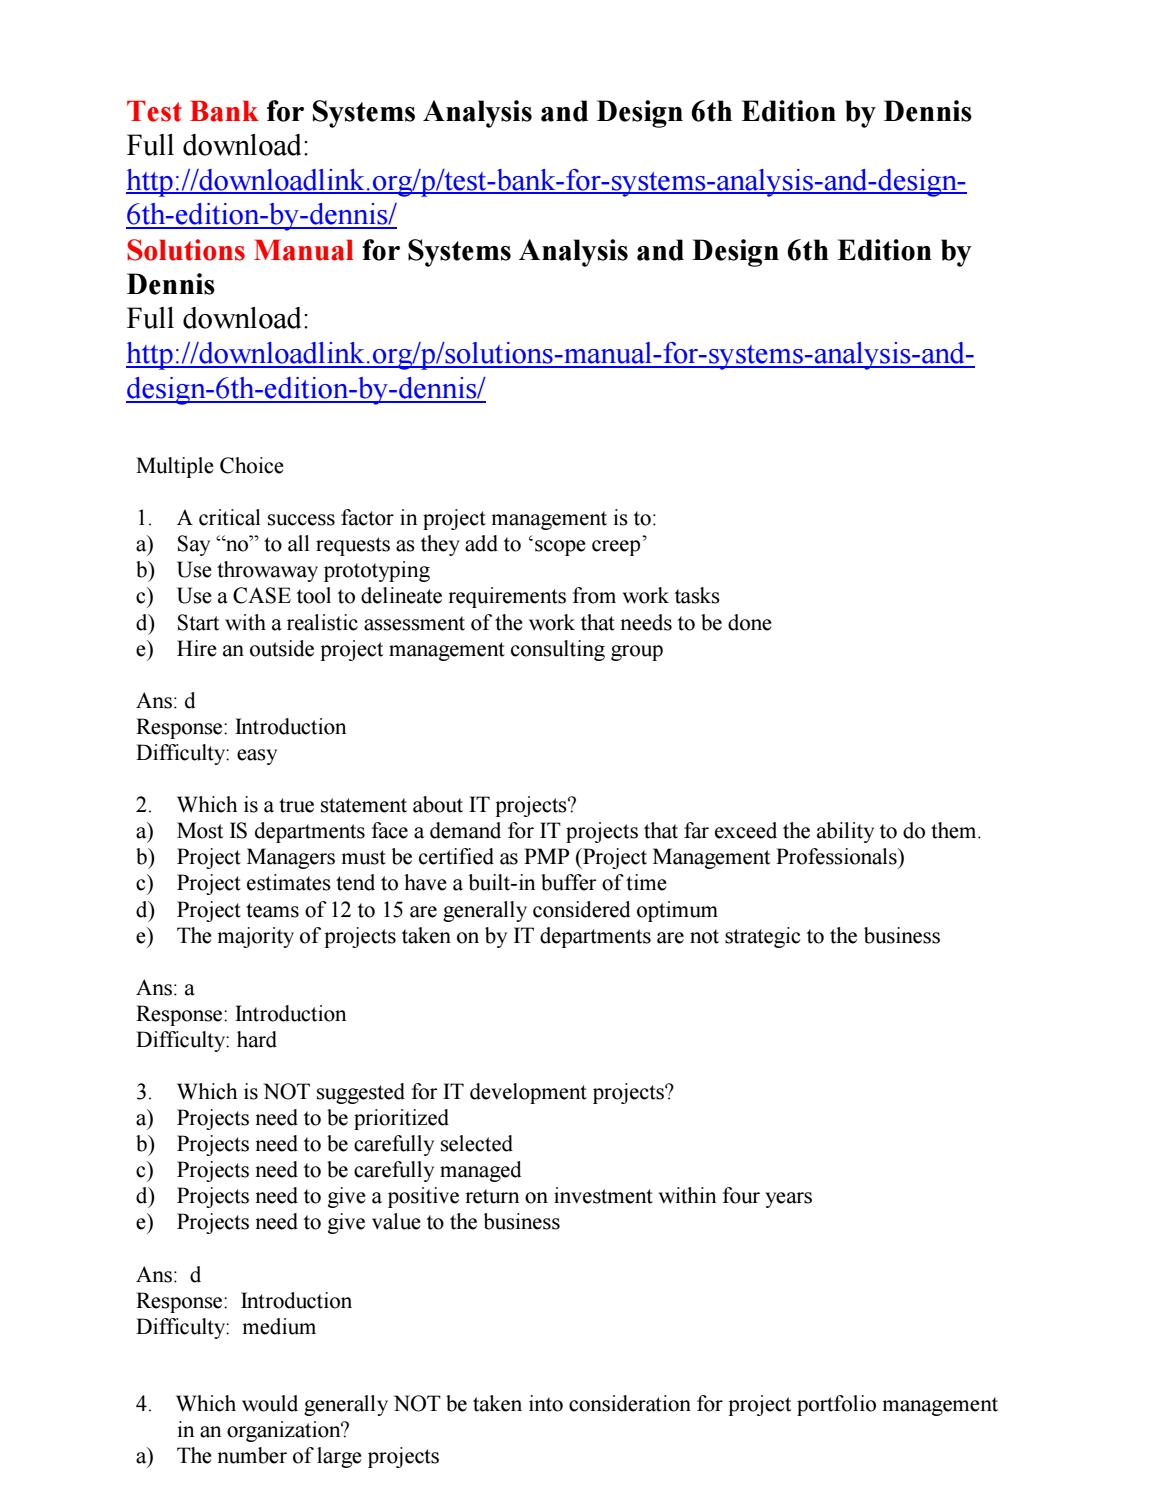 Test Bank For Systems Analysis And Design 6th Edition By Dennis By Beechy111 Issuu